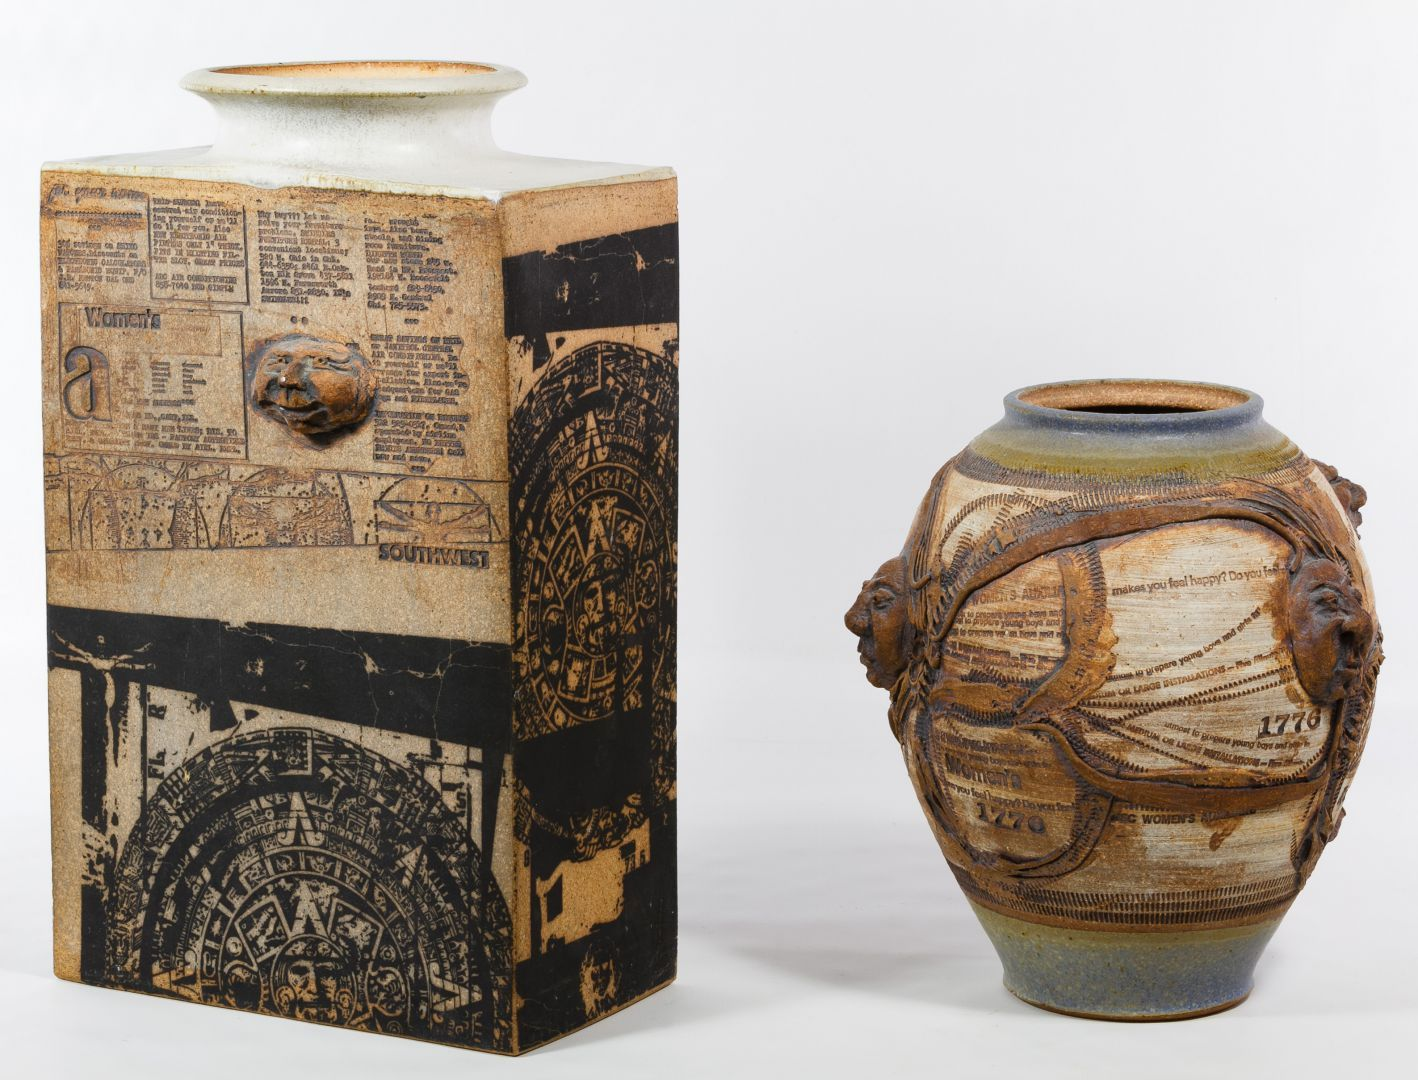 Lot 307: Don Johns Pottery Vases; Two vases decorated with transfer prints, impressions, incised lines and applied faces; round one signed on the underside